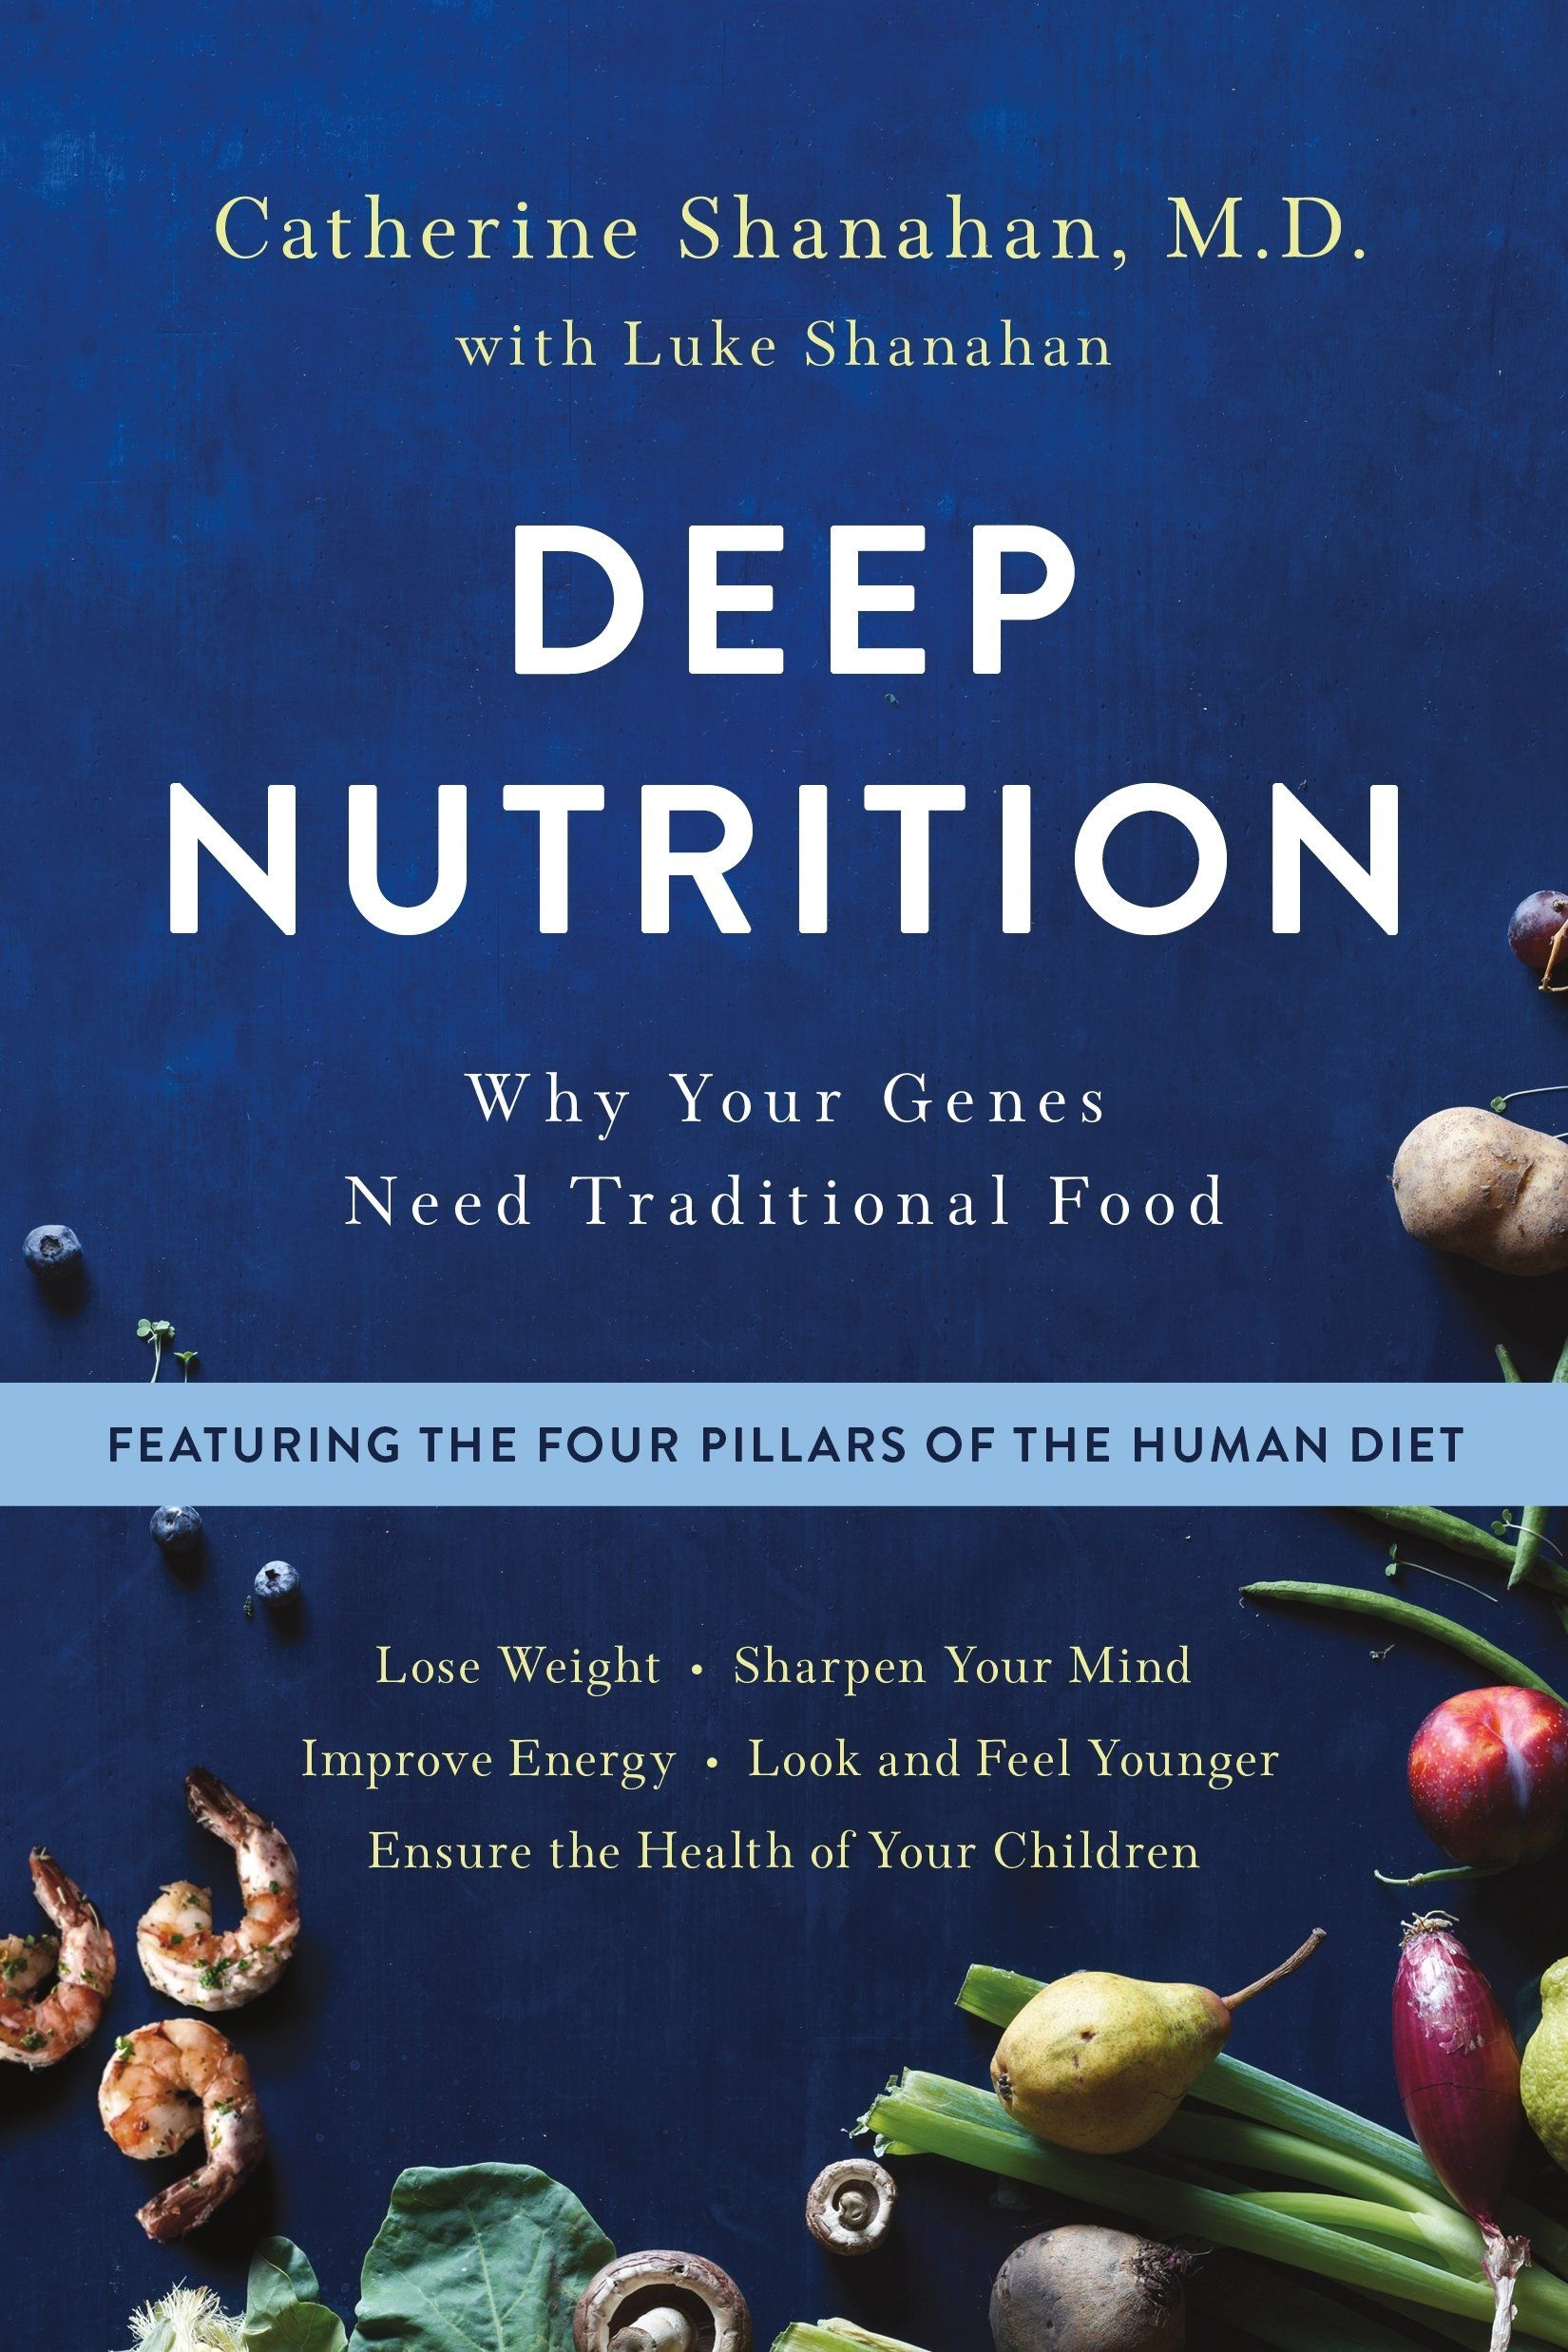 This Is The Nutrition And Diet Bible As I See It A Book Of The Utmost Importance Dispels Many Myths About Diet Traditional Food Nutrition Holistic Nutrition